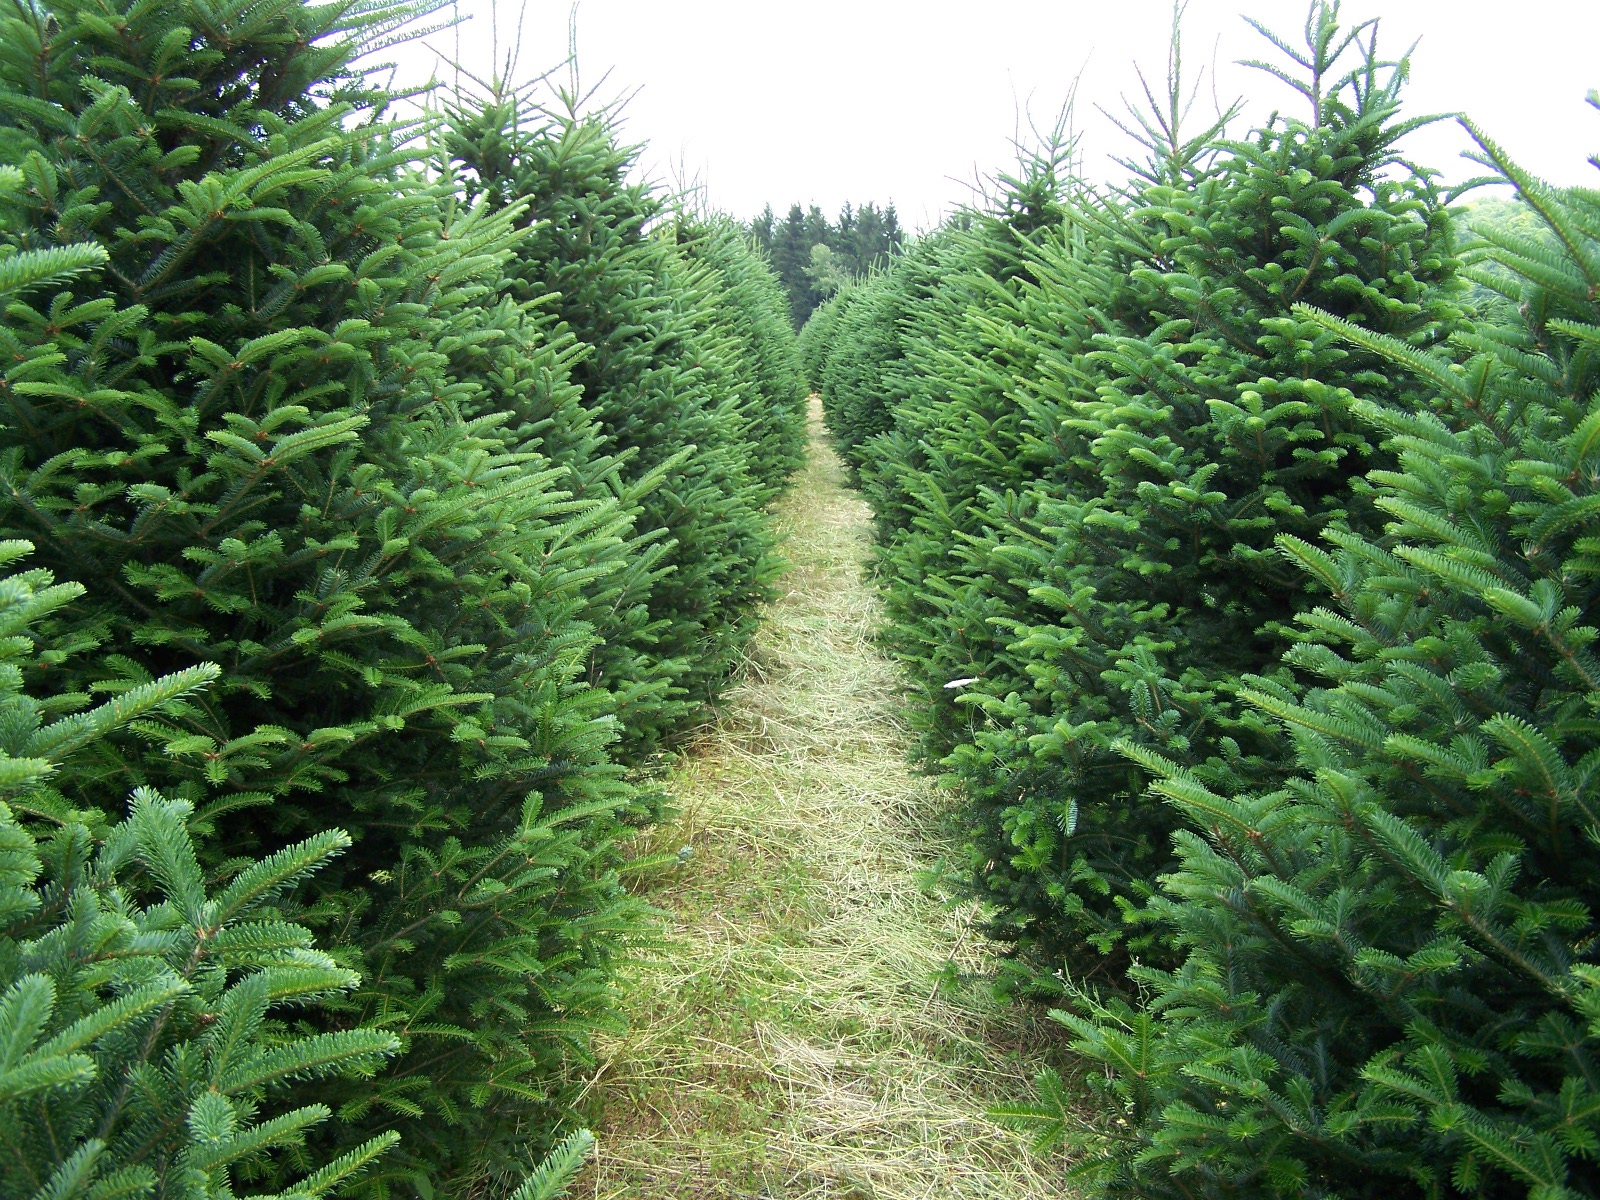 1 8 11 Foot Fraser Fir Christmas Trees Perkins Orchard